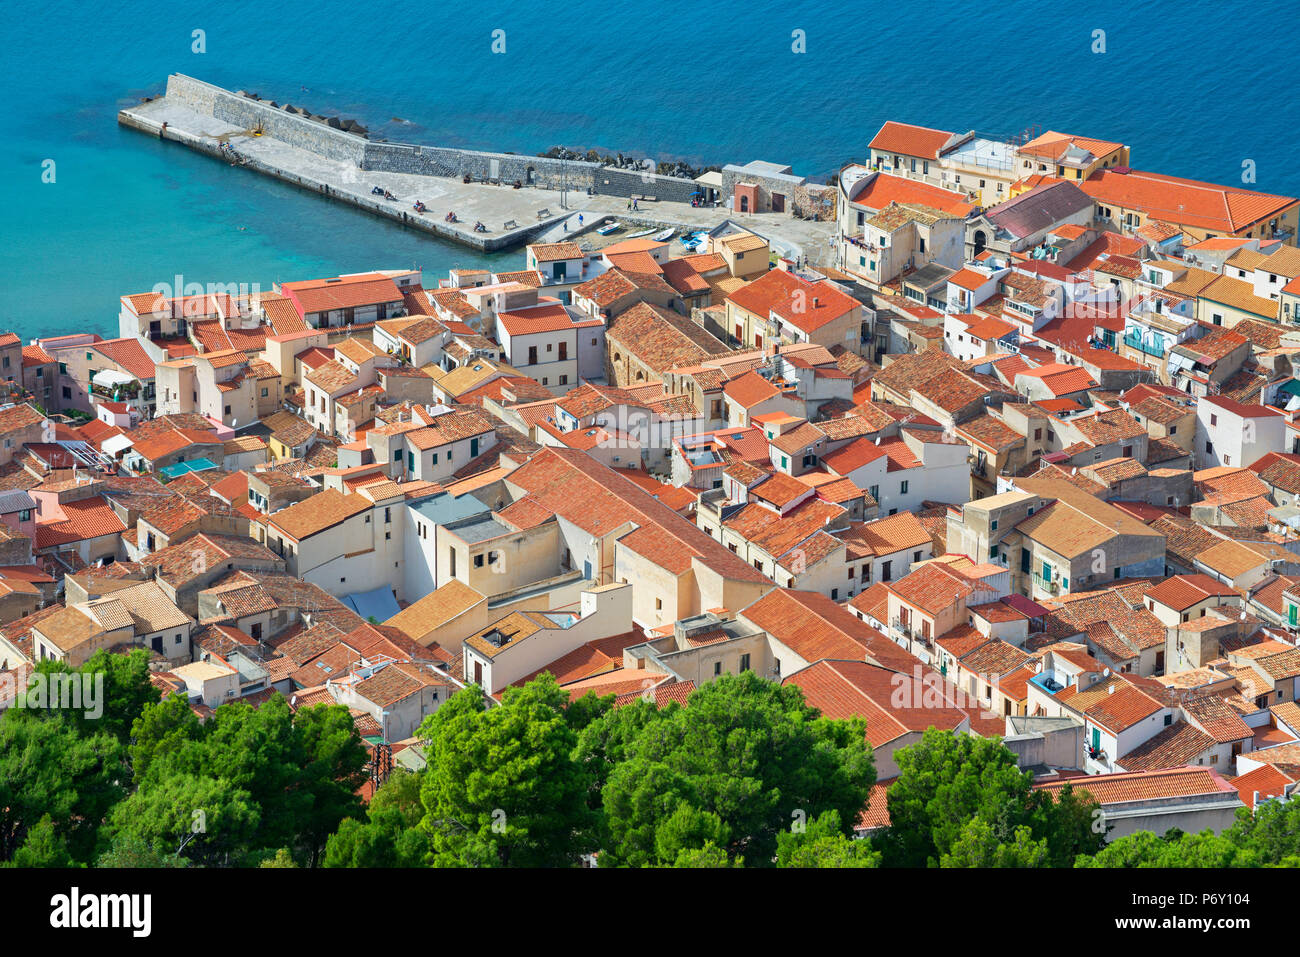 Top view of Cefalu from La Rocca, Cefalu, Sicily, Italy, Europe - Stock Image